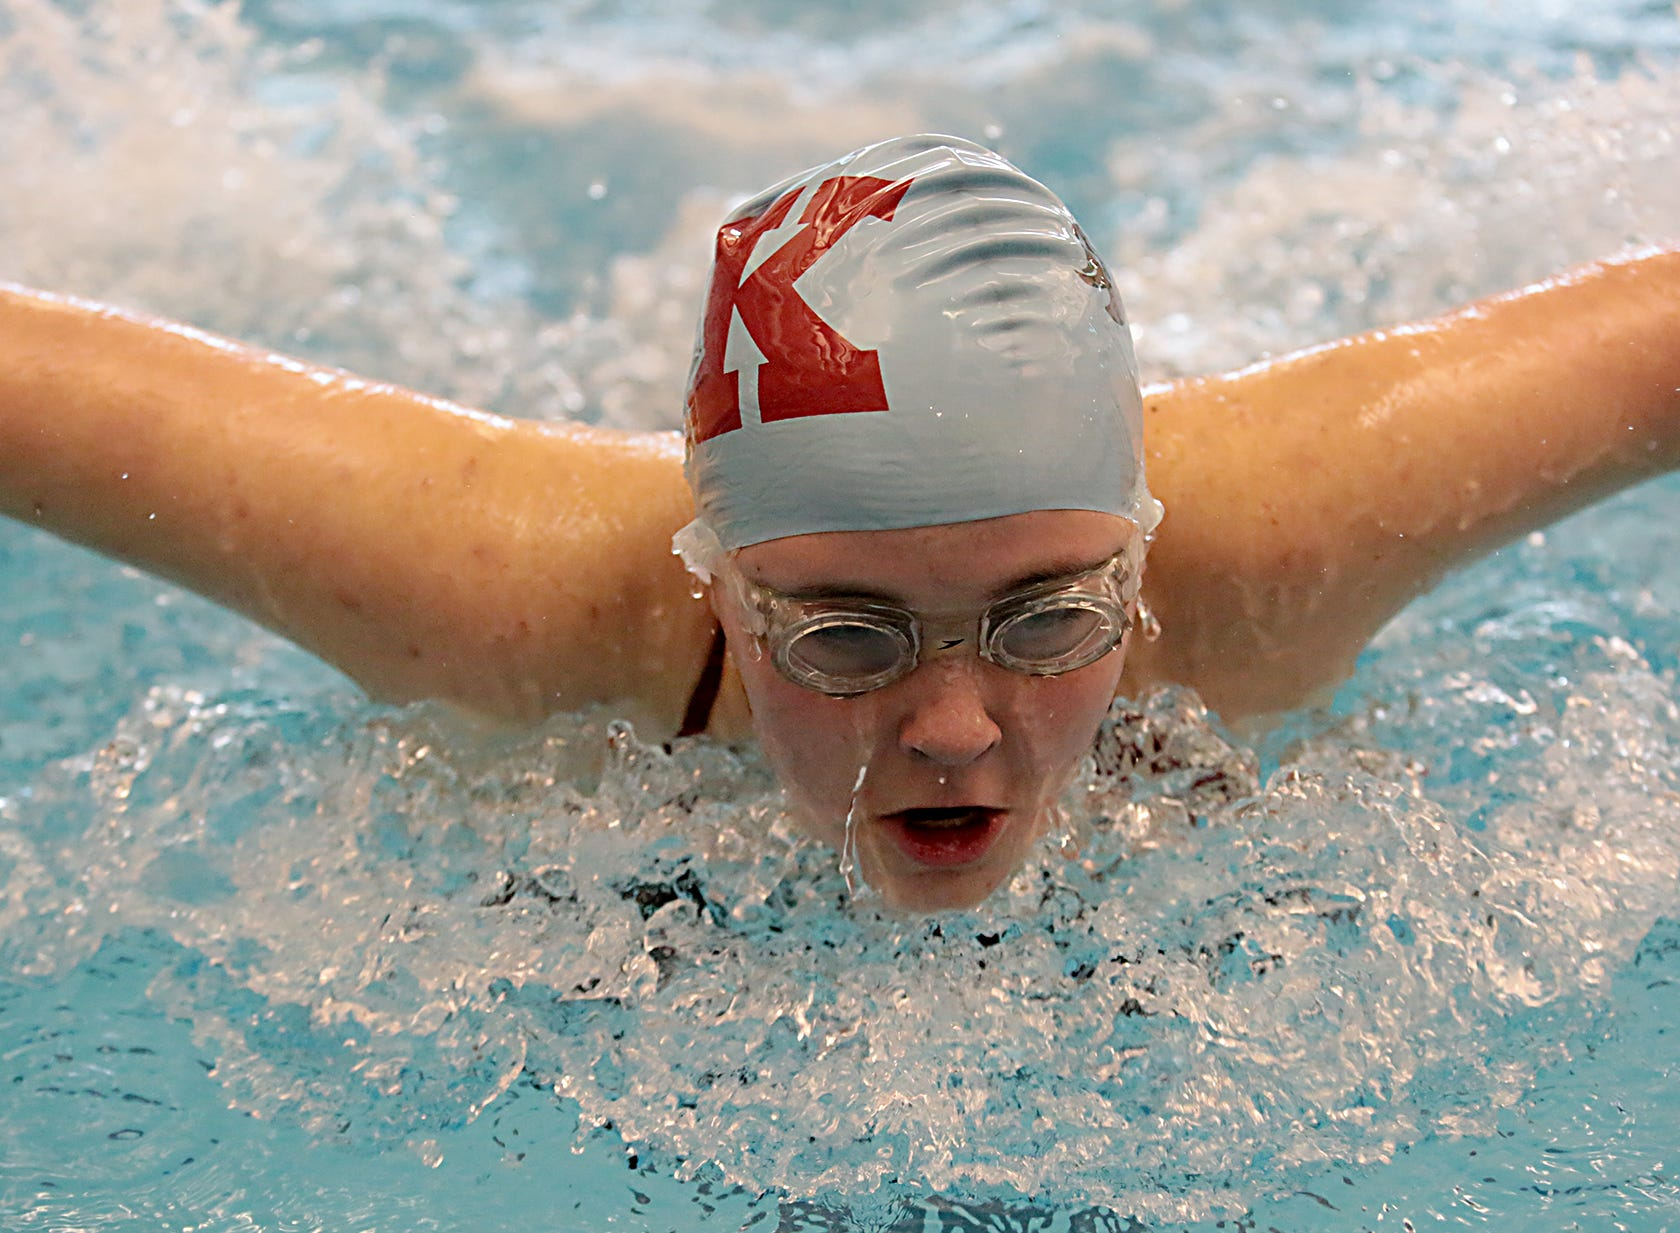 Aubrey Schimpf, from Kings, competes in the 100-yard butterfly during the Division I and II sectionals at Mason High School Saturday, Feb. 9, 2019.